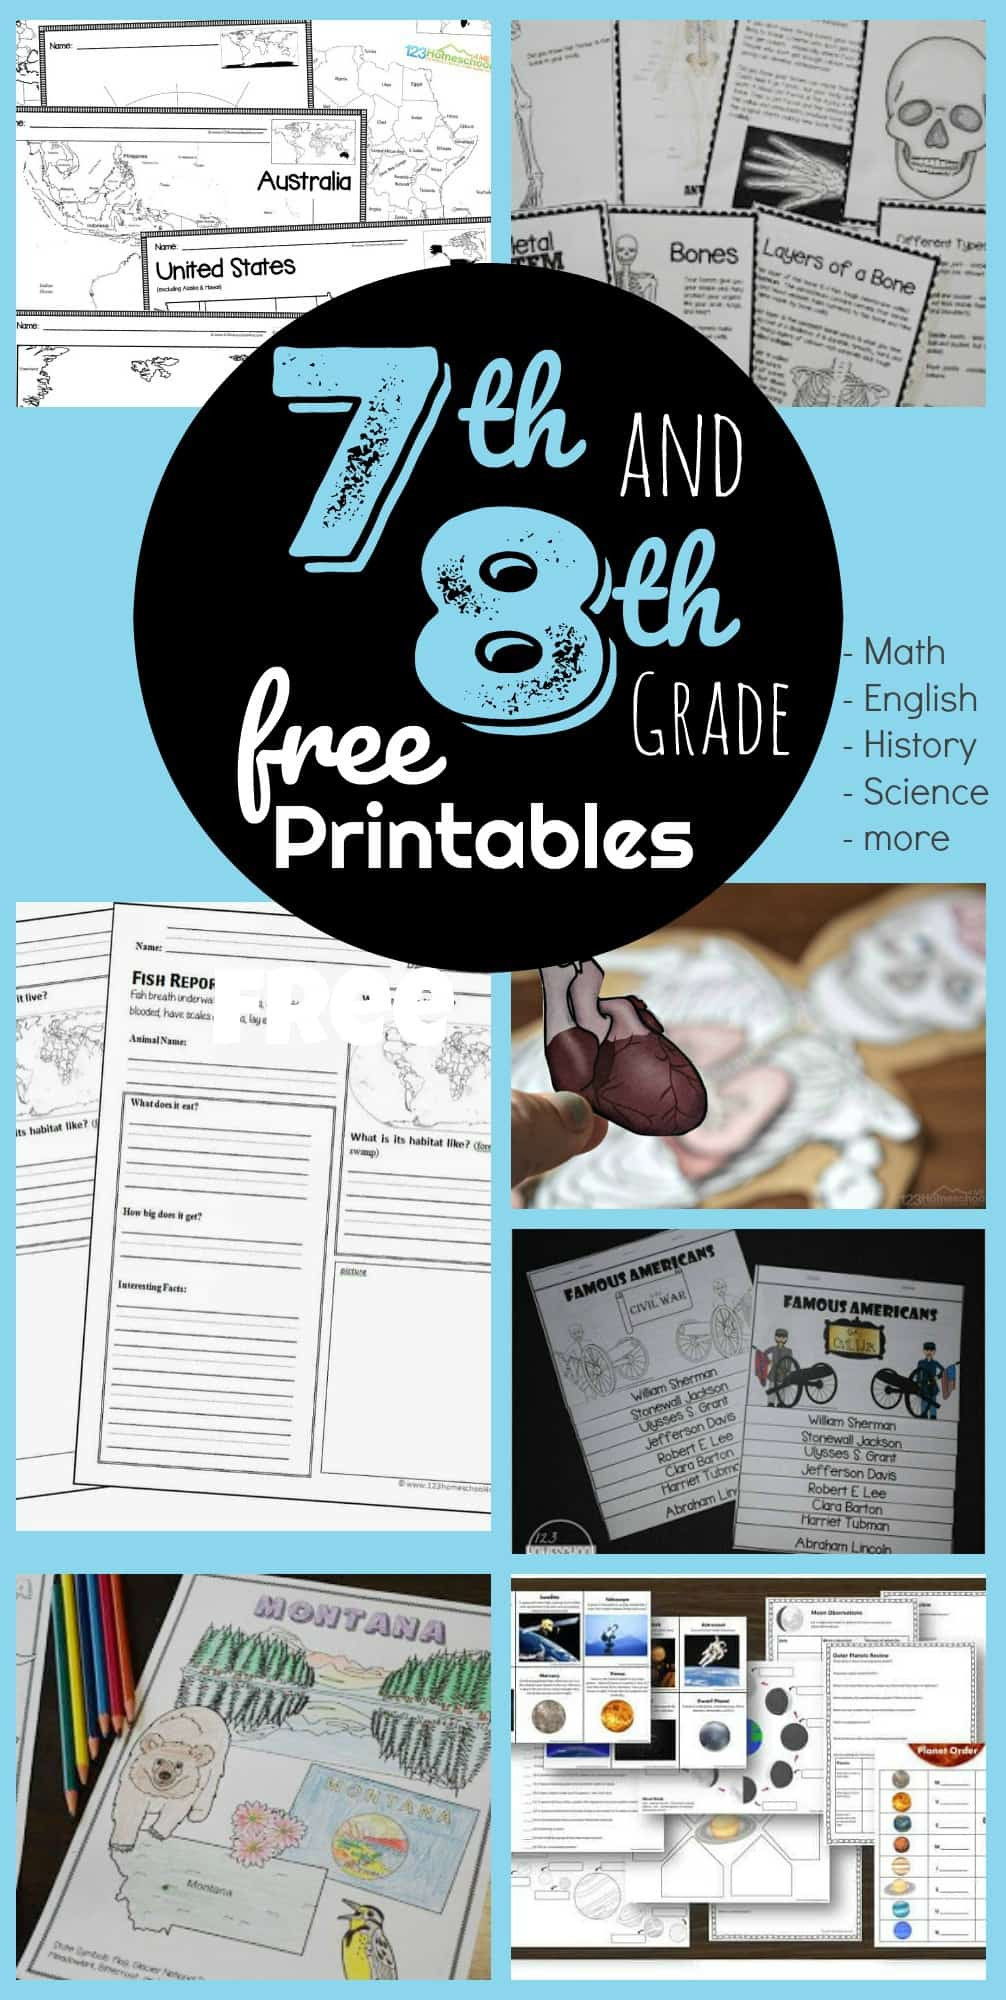 7 Grade Science Worksheets Free 7th & 8th Grade Worksheets